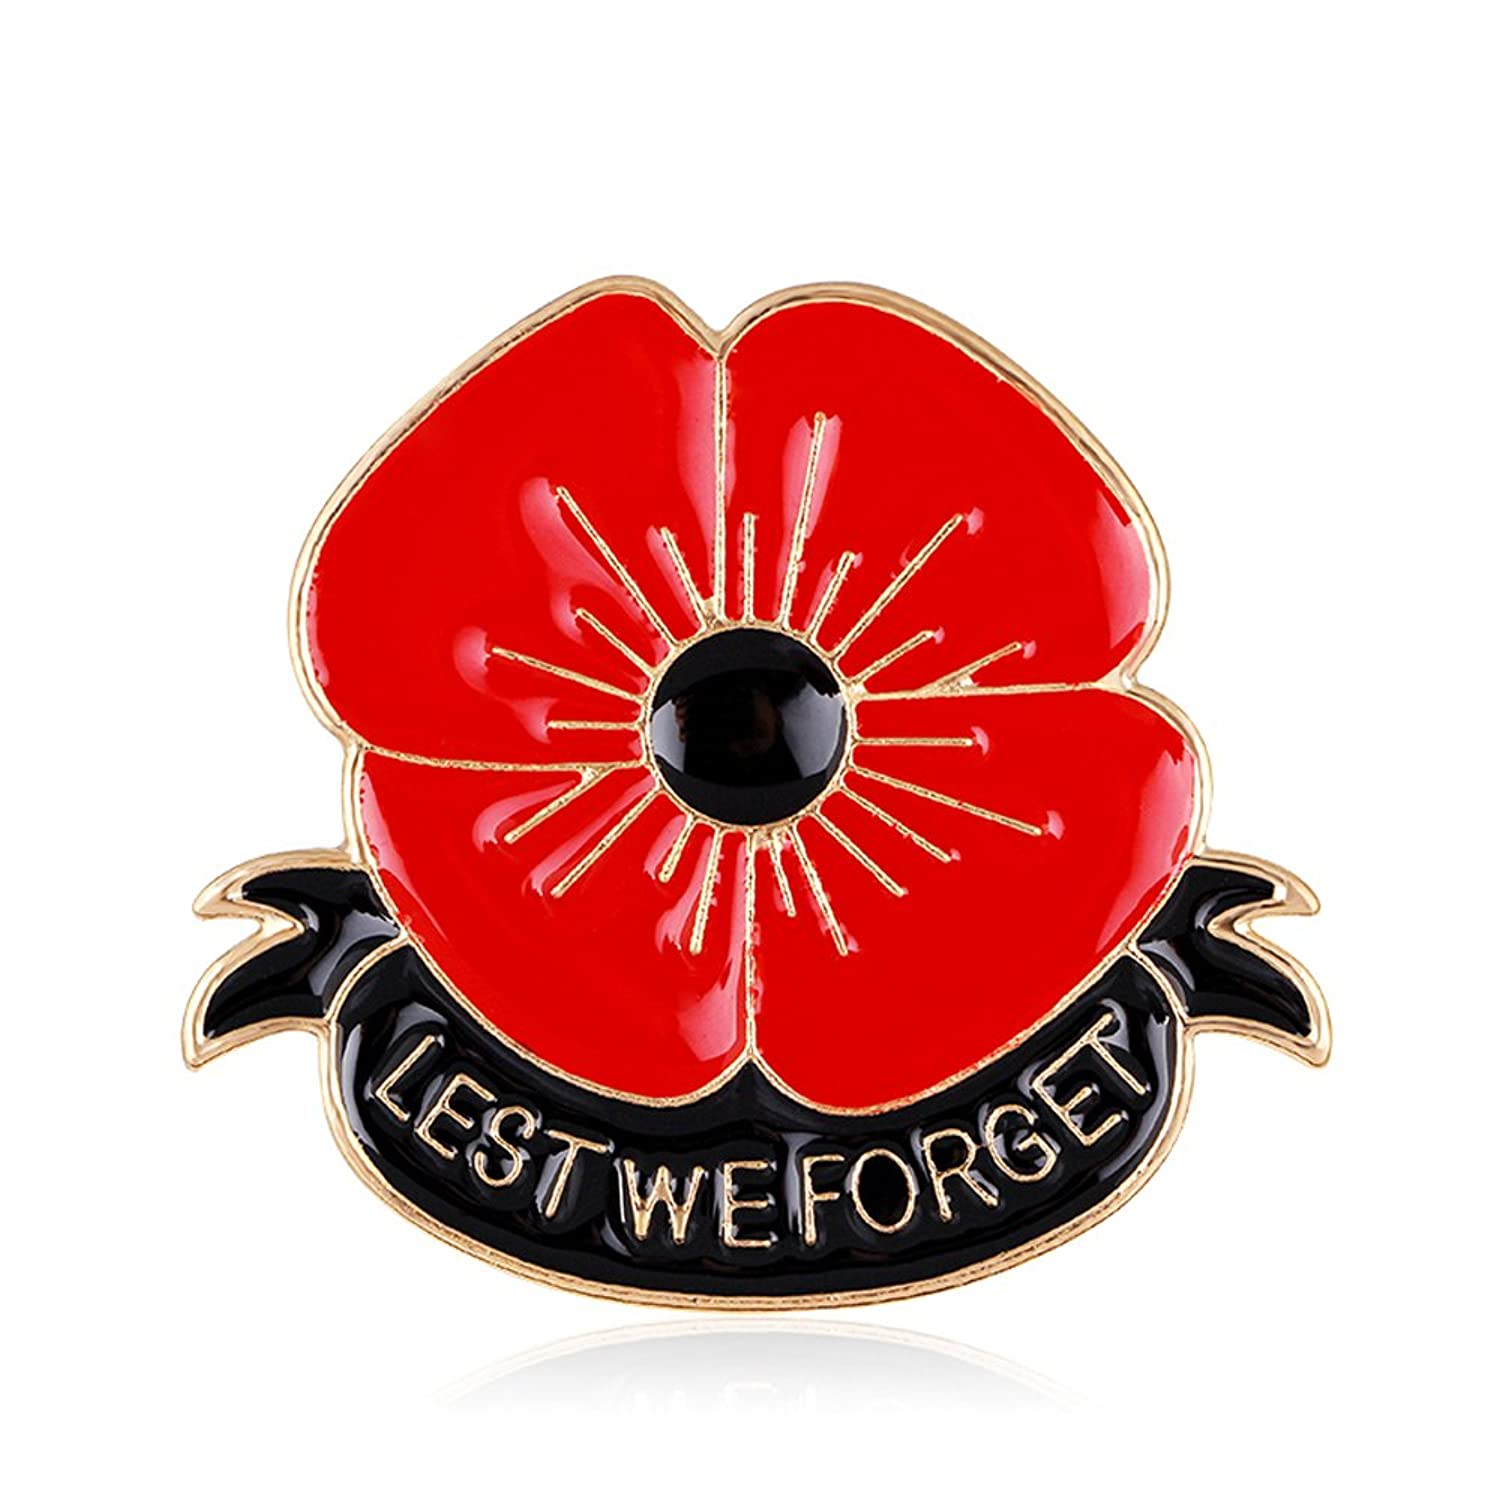 Amazon masn remembrance day memorial day gift poppy brooch amazon masn remembrance day memorial day gift poppy brooch pins lest we forget flower badge broach lest we forget c home kitchen mightylinksfo